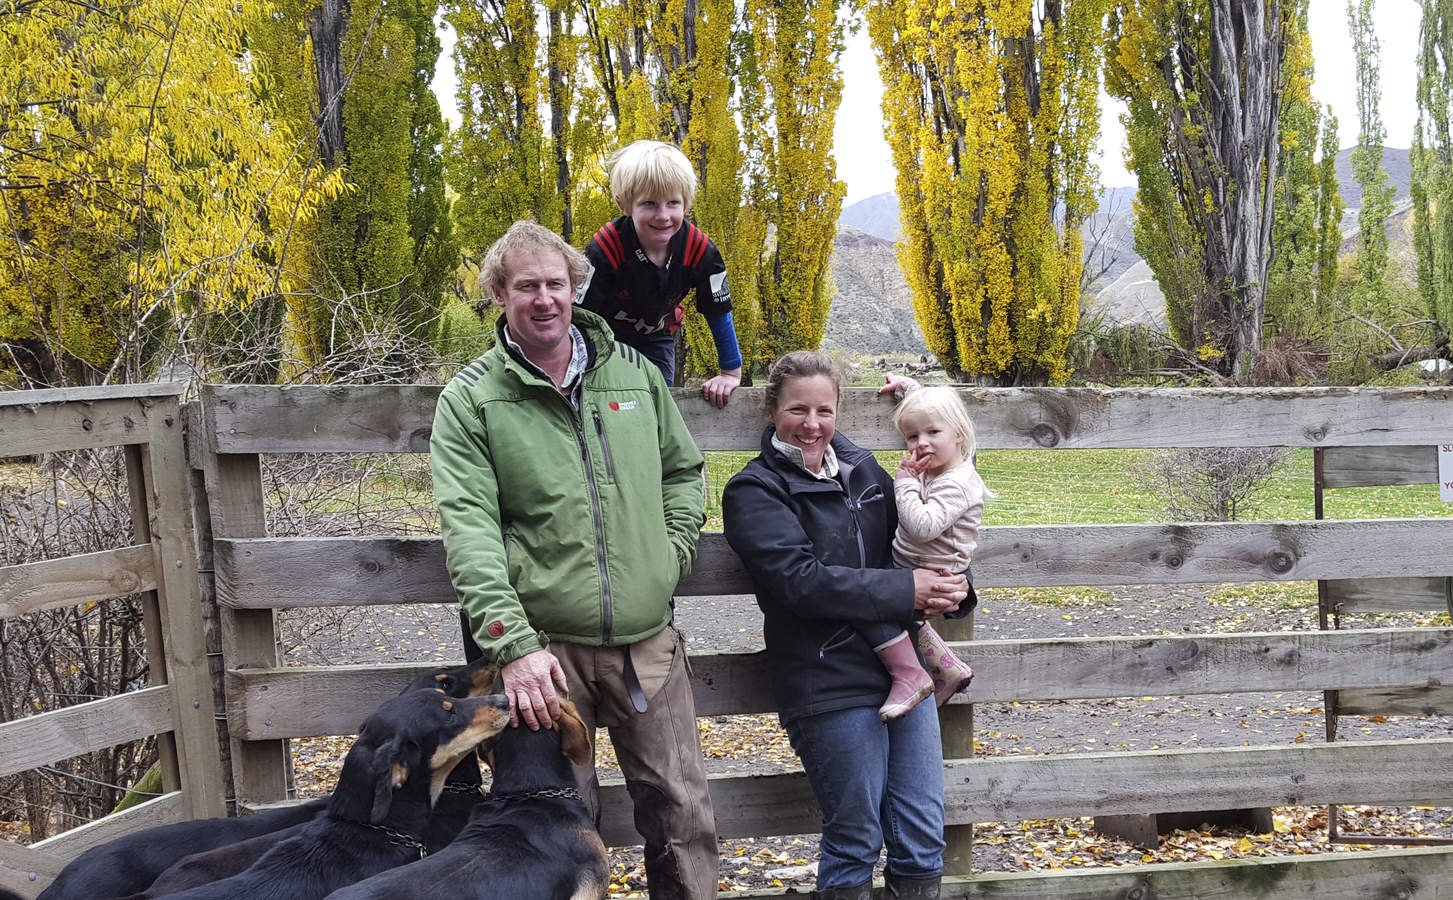 The Redfern family. (L-R) Guy, Arthur, Fiona and Matilda.